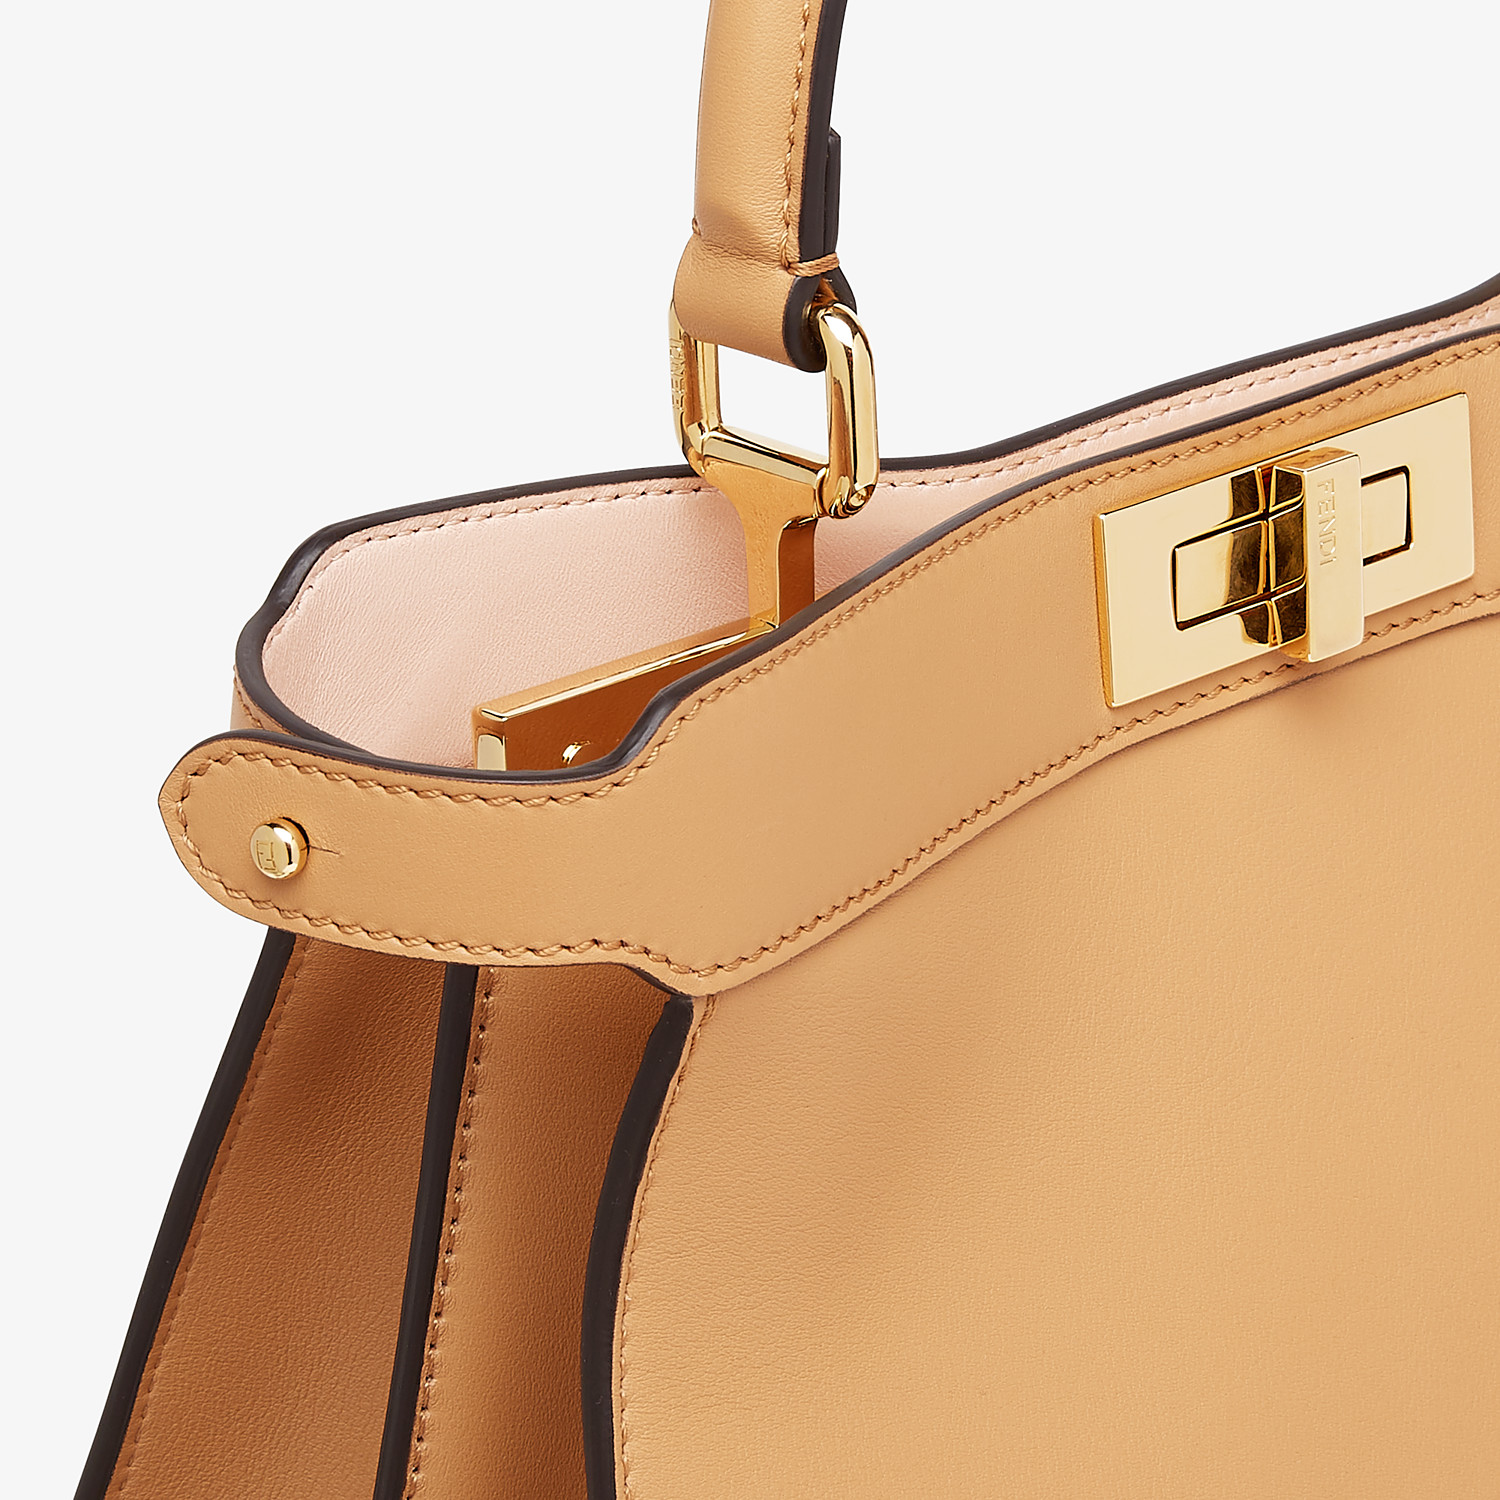 FENDI PEEKABOO ISEEU MEDIUM - Beige leather bag - view 7 detail